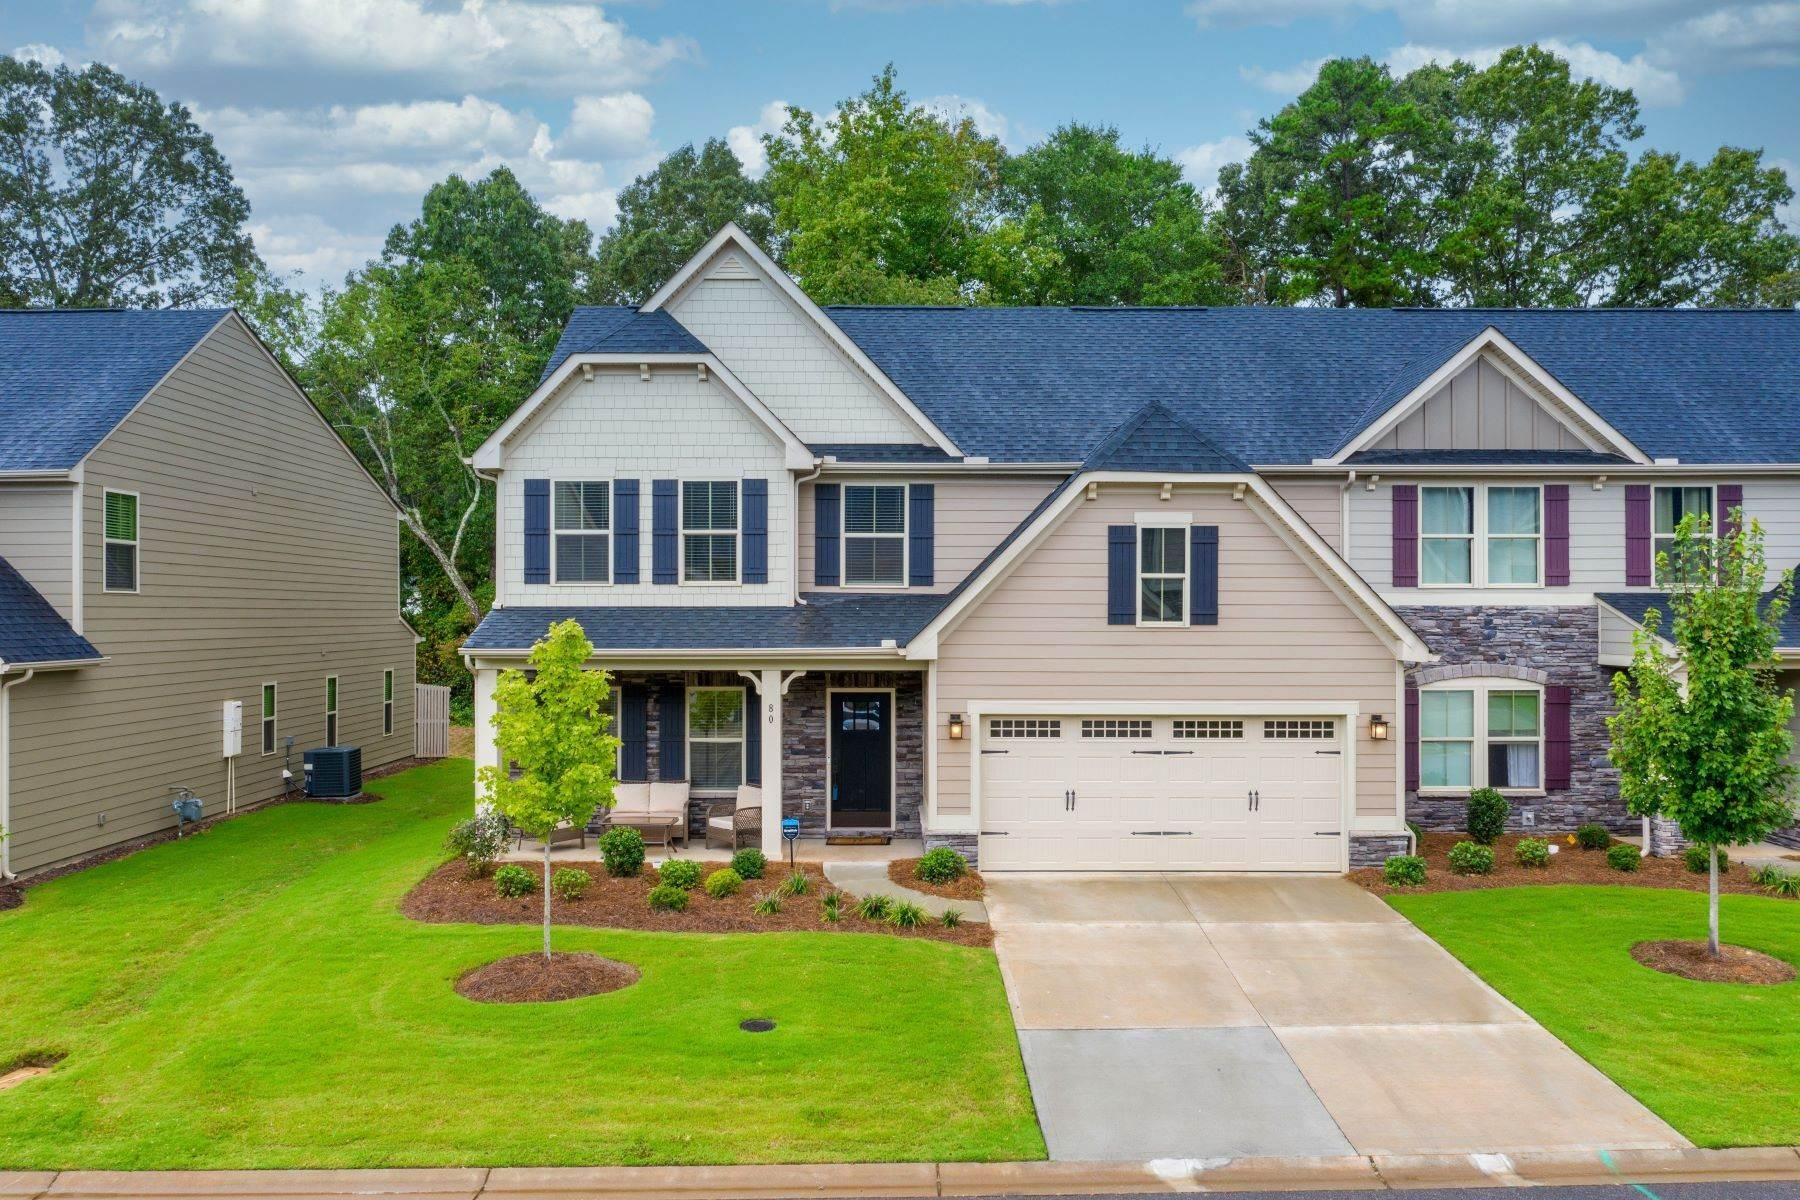 townhouses for Sale at UNDER CONTRACT! 80 Hemingway Lane, Simpsonville, SC 29681 Simpsonville, SC 29681